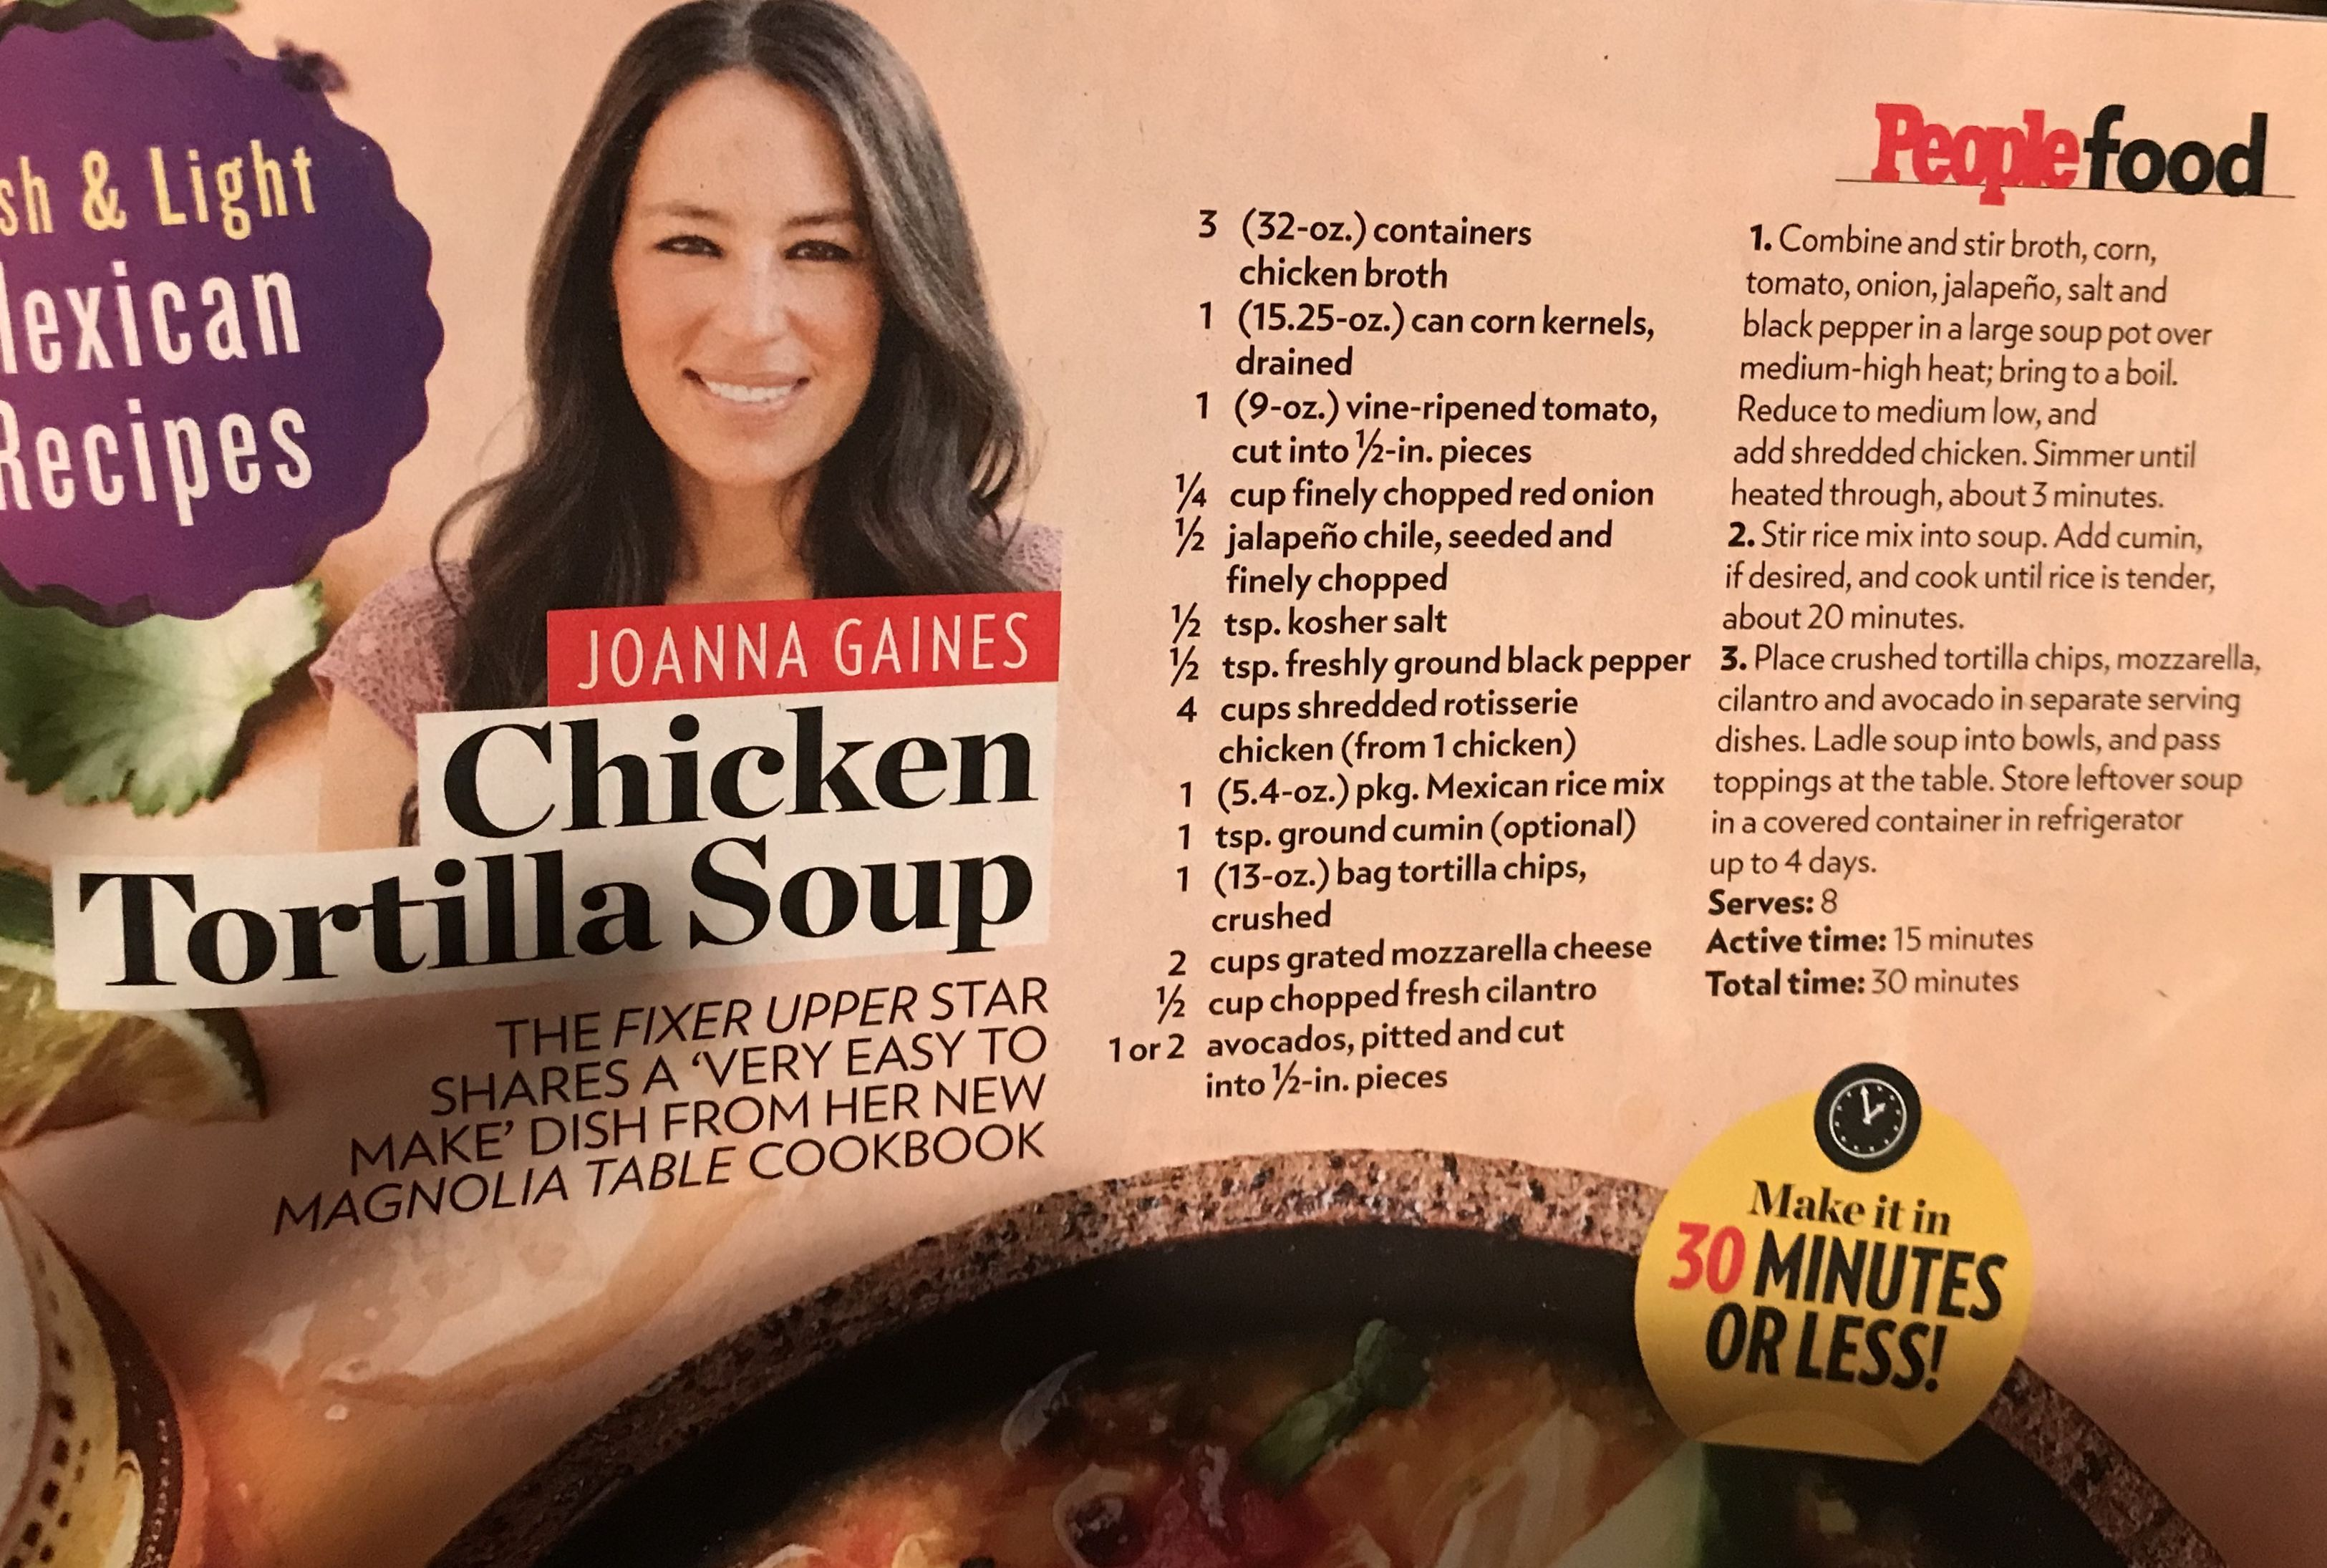 Joanna Gaines Chicken Tortilla Soup People Mag Chicken Tortilla Soup Tortilla Soup Chicken